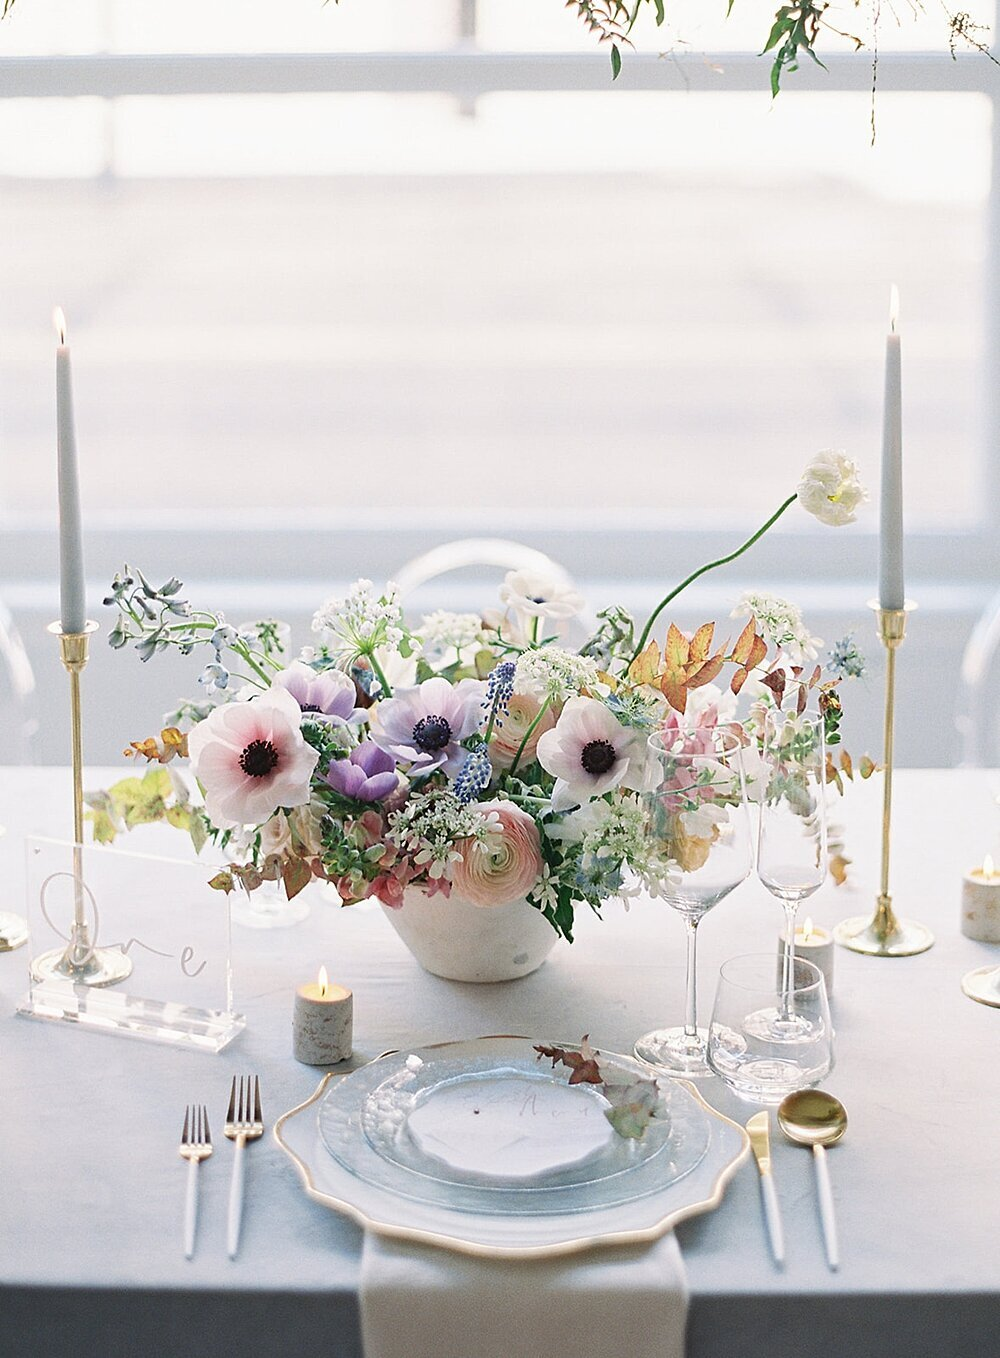 Modern-love-event-leigh-and-mitchell-spring-anemone-floral-centerpiece-ideas